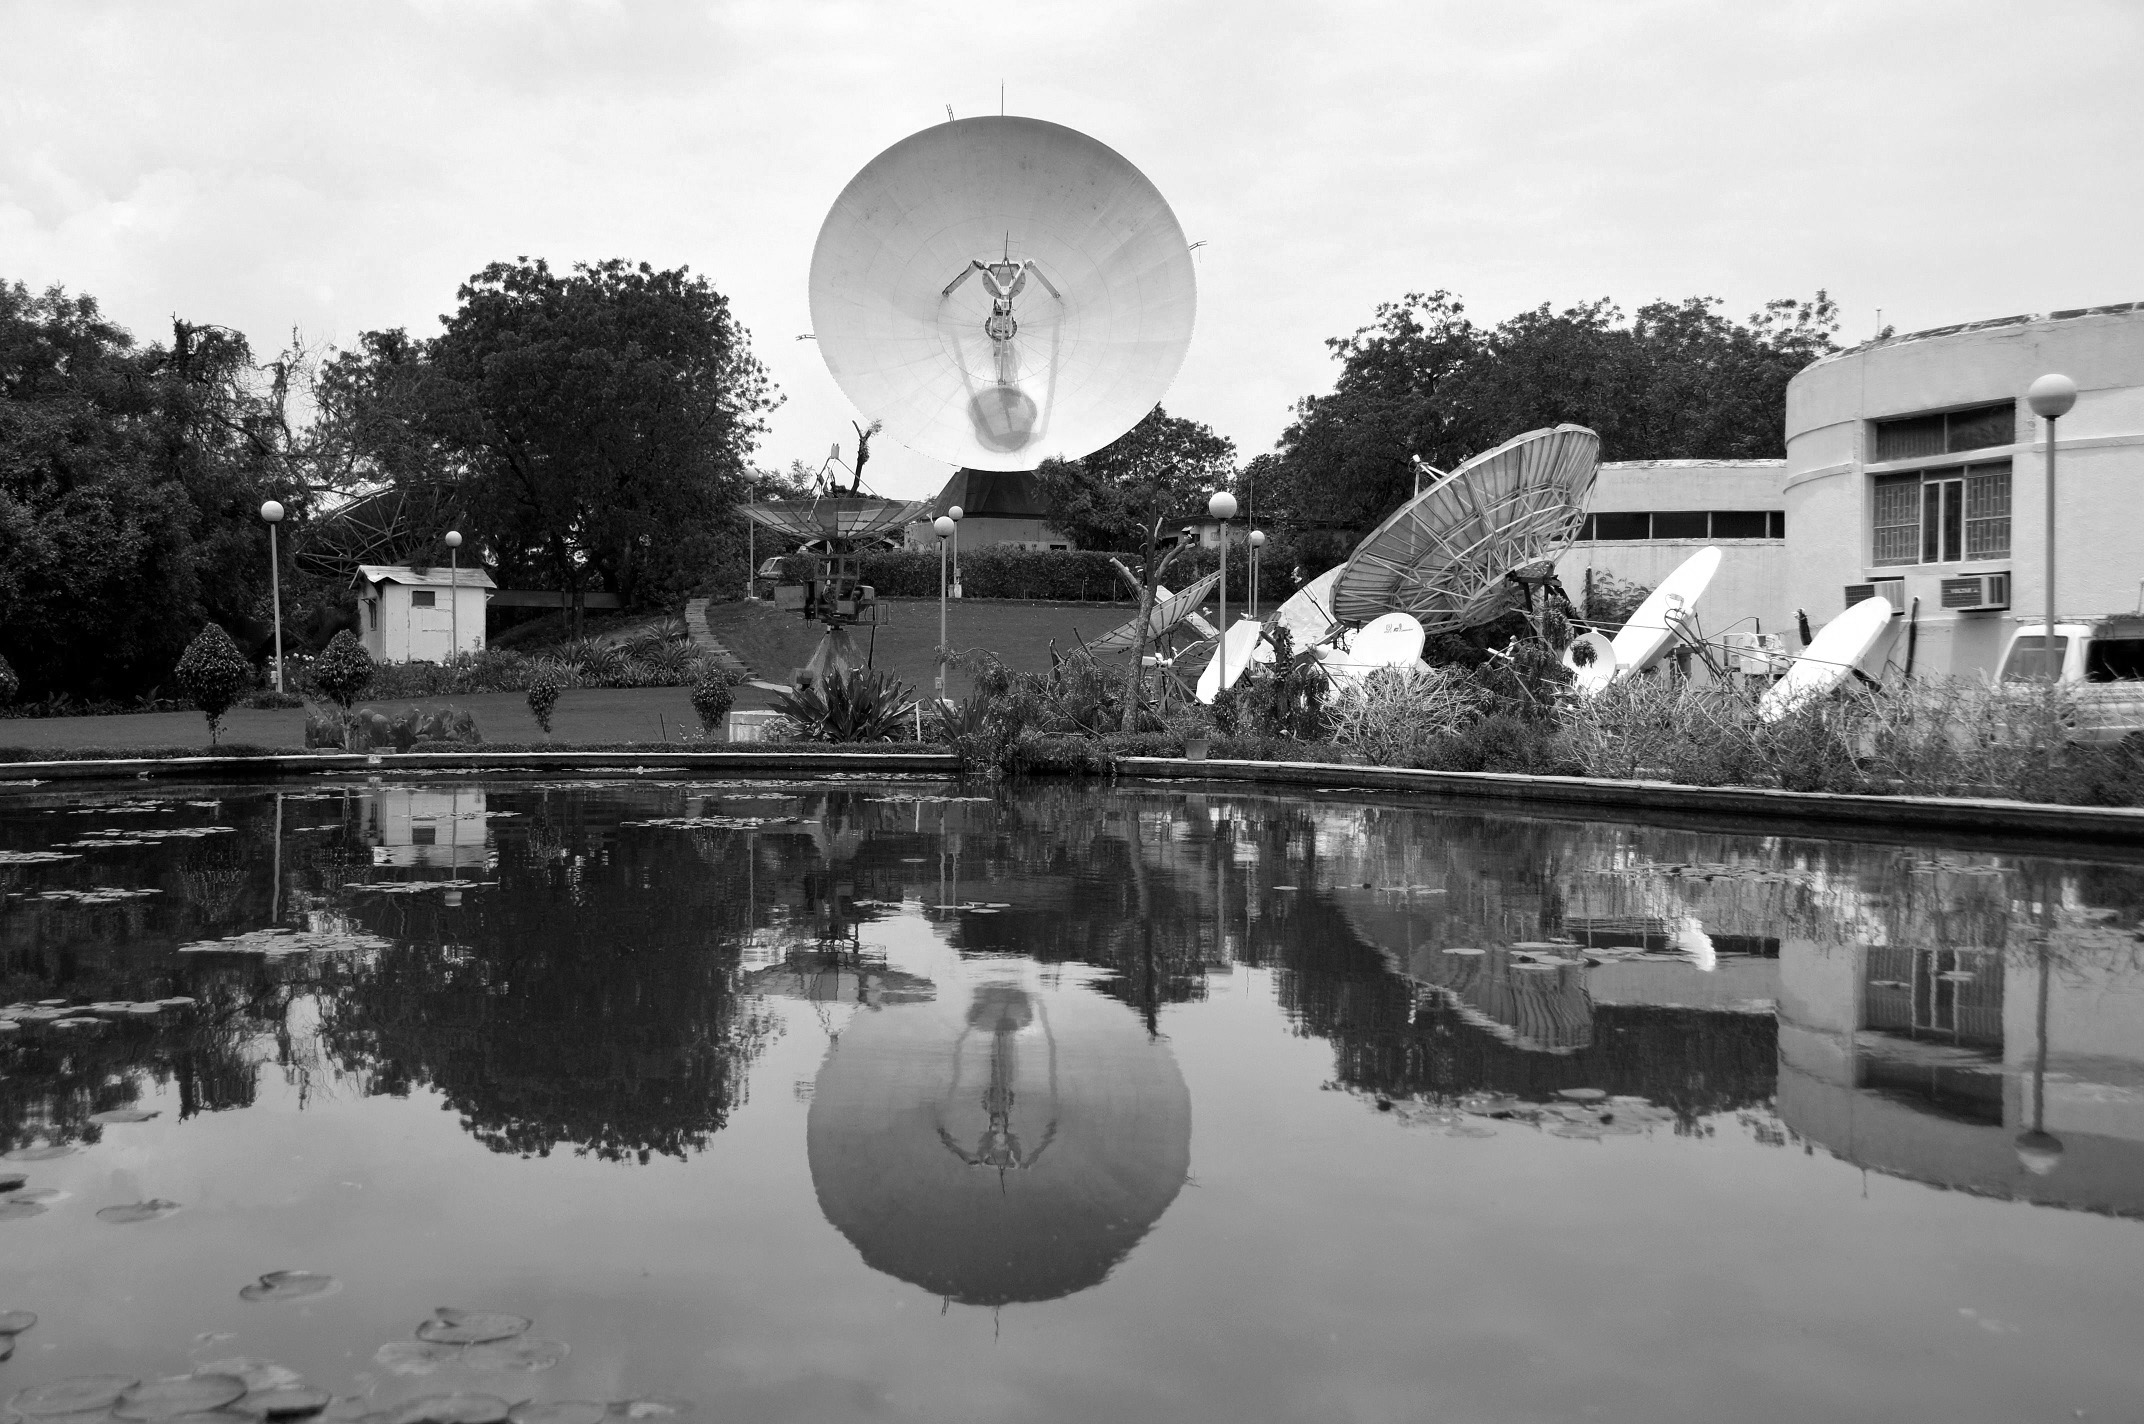 A journey of 100 years of Architecture in India | Part 02 - 1967-78 Space Applications Centre Ahmedabad